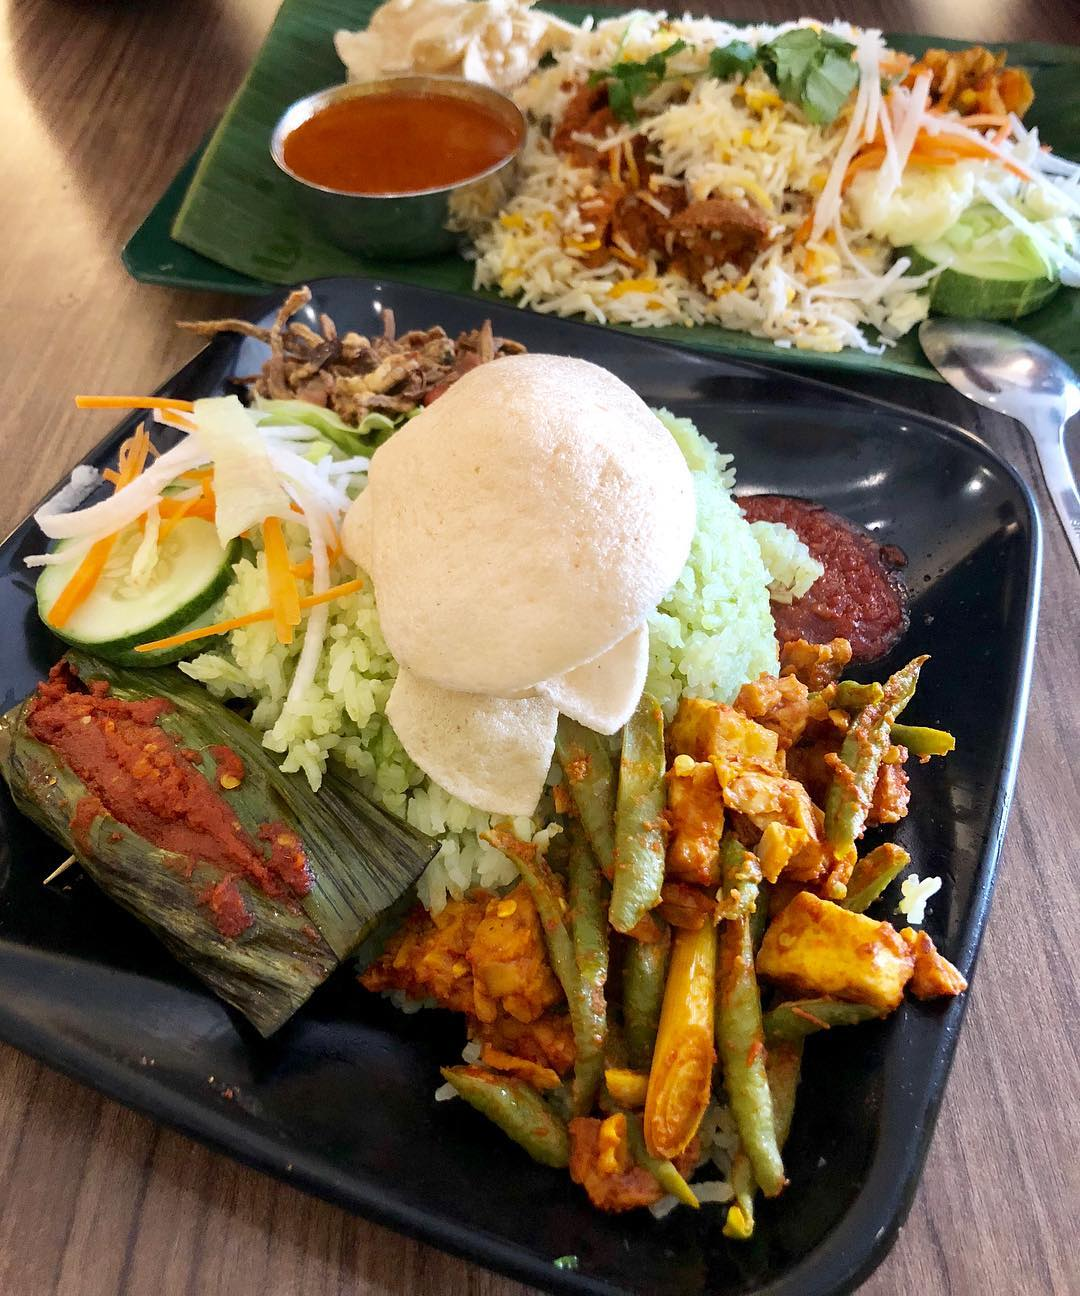 10 Vegetarian Food Delivery Options In Singapore For Meatless Meals Sent Straight To Your Door gokul vegetarian